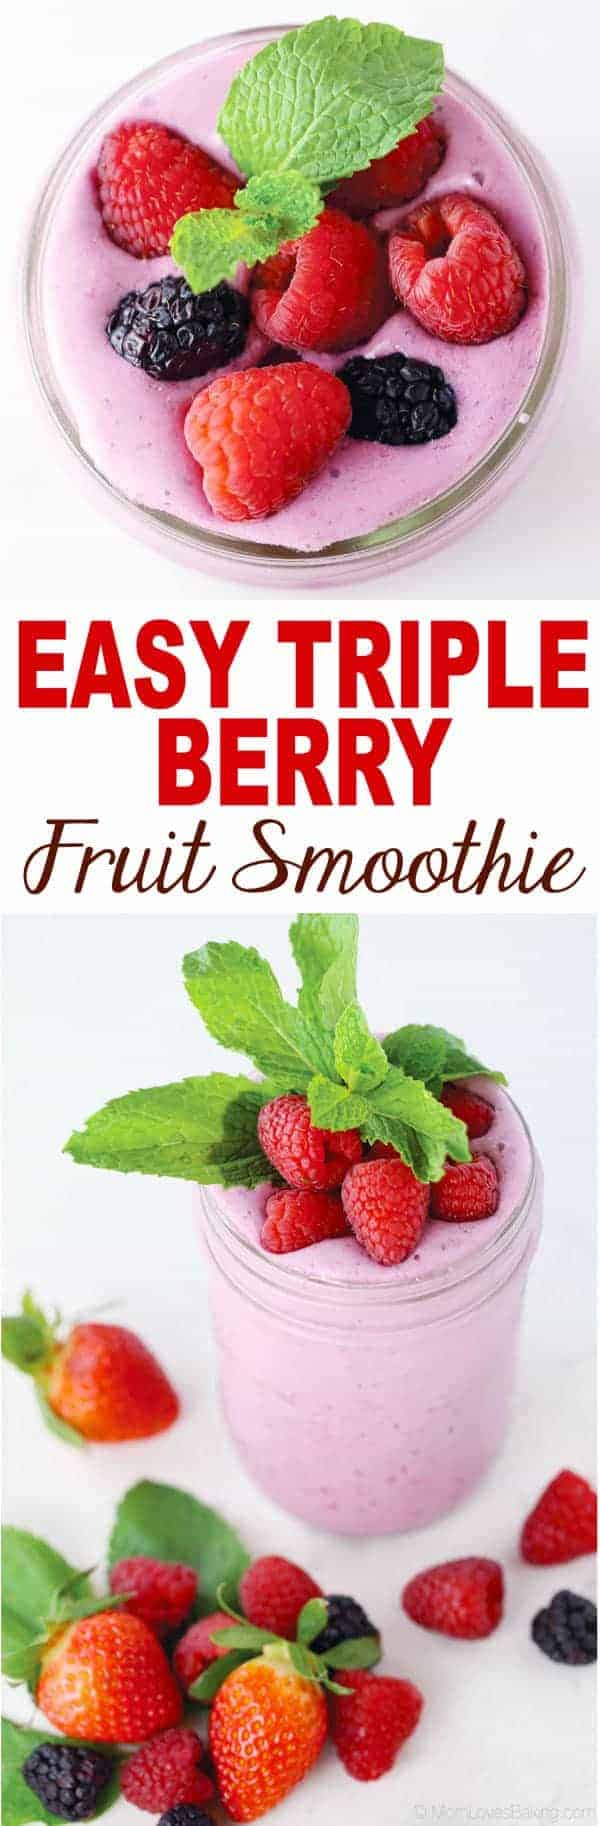 Easy Triple Berry Fruit Smoothie Mom Loves Baking